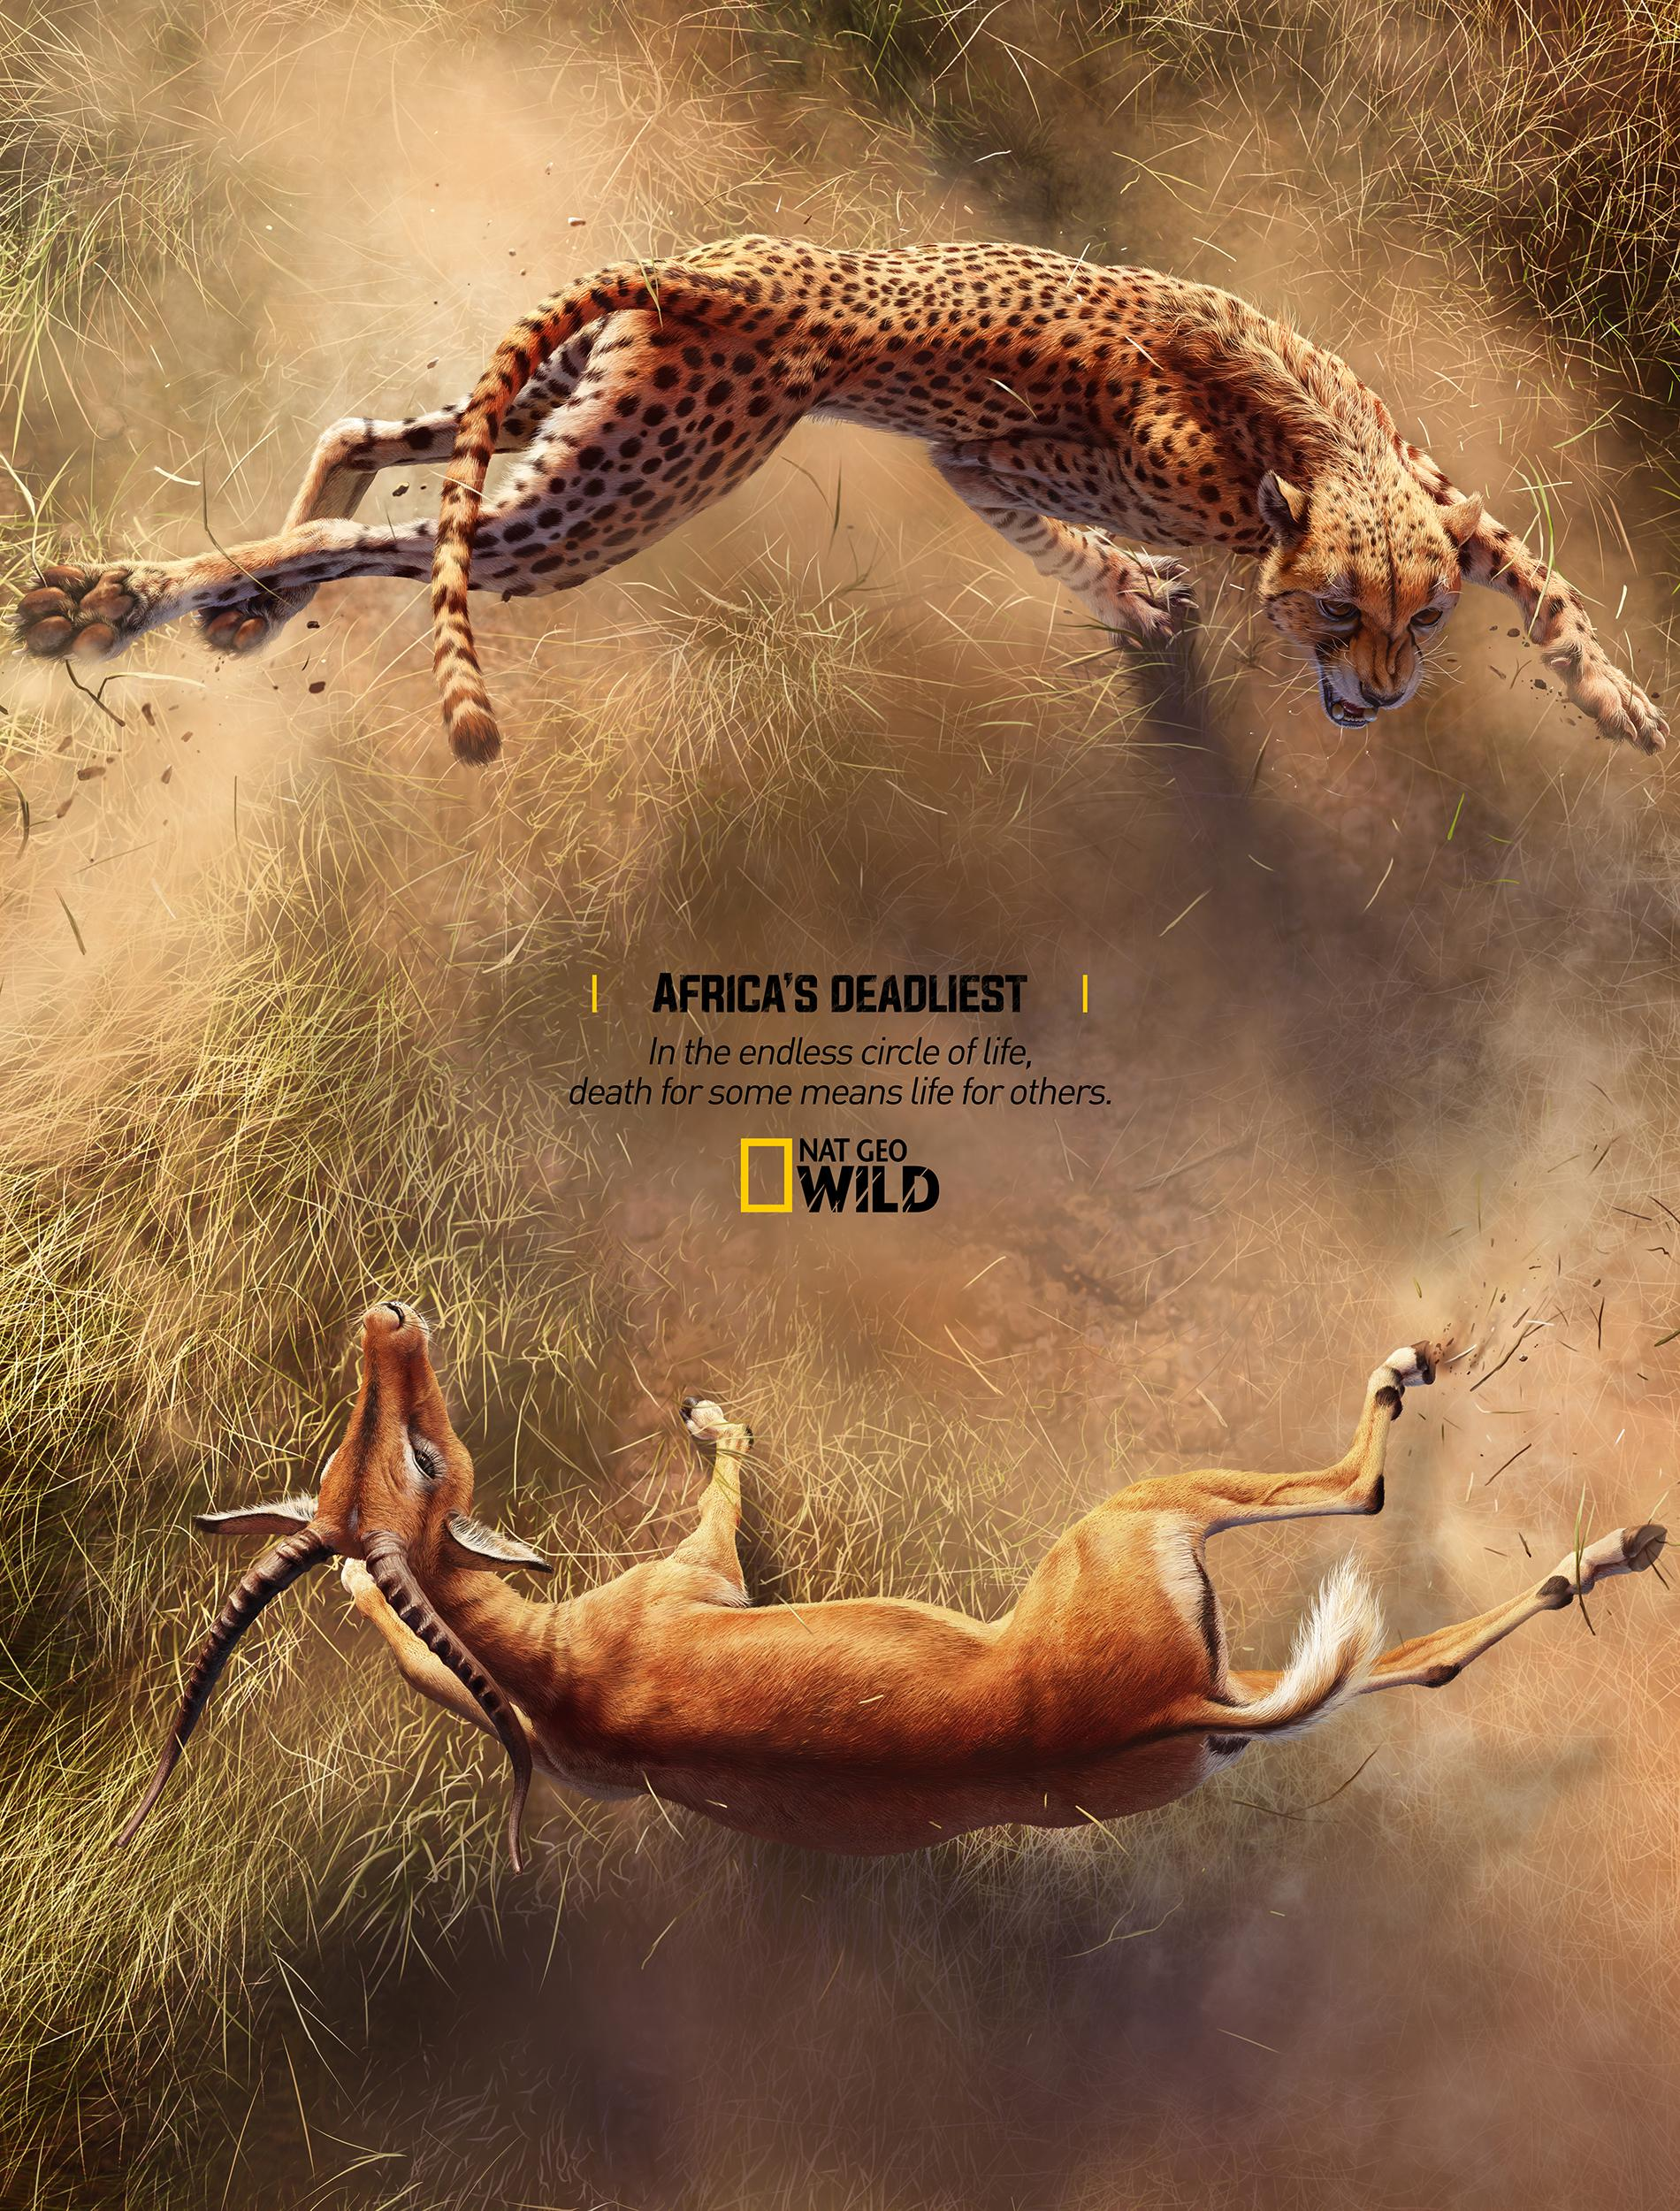 National Geographic Print Ad - Africa's Deadliest - Cheetah X Impala